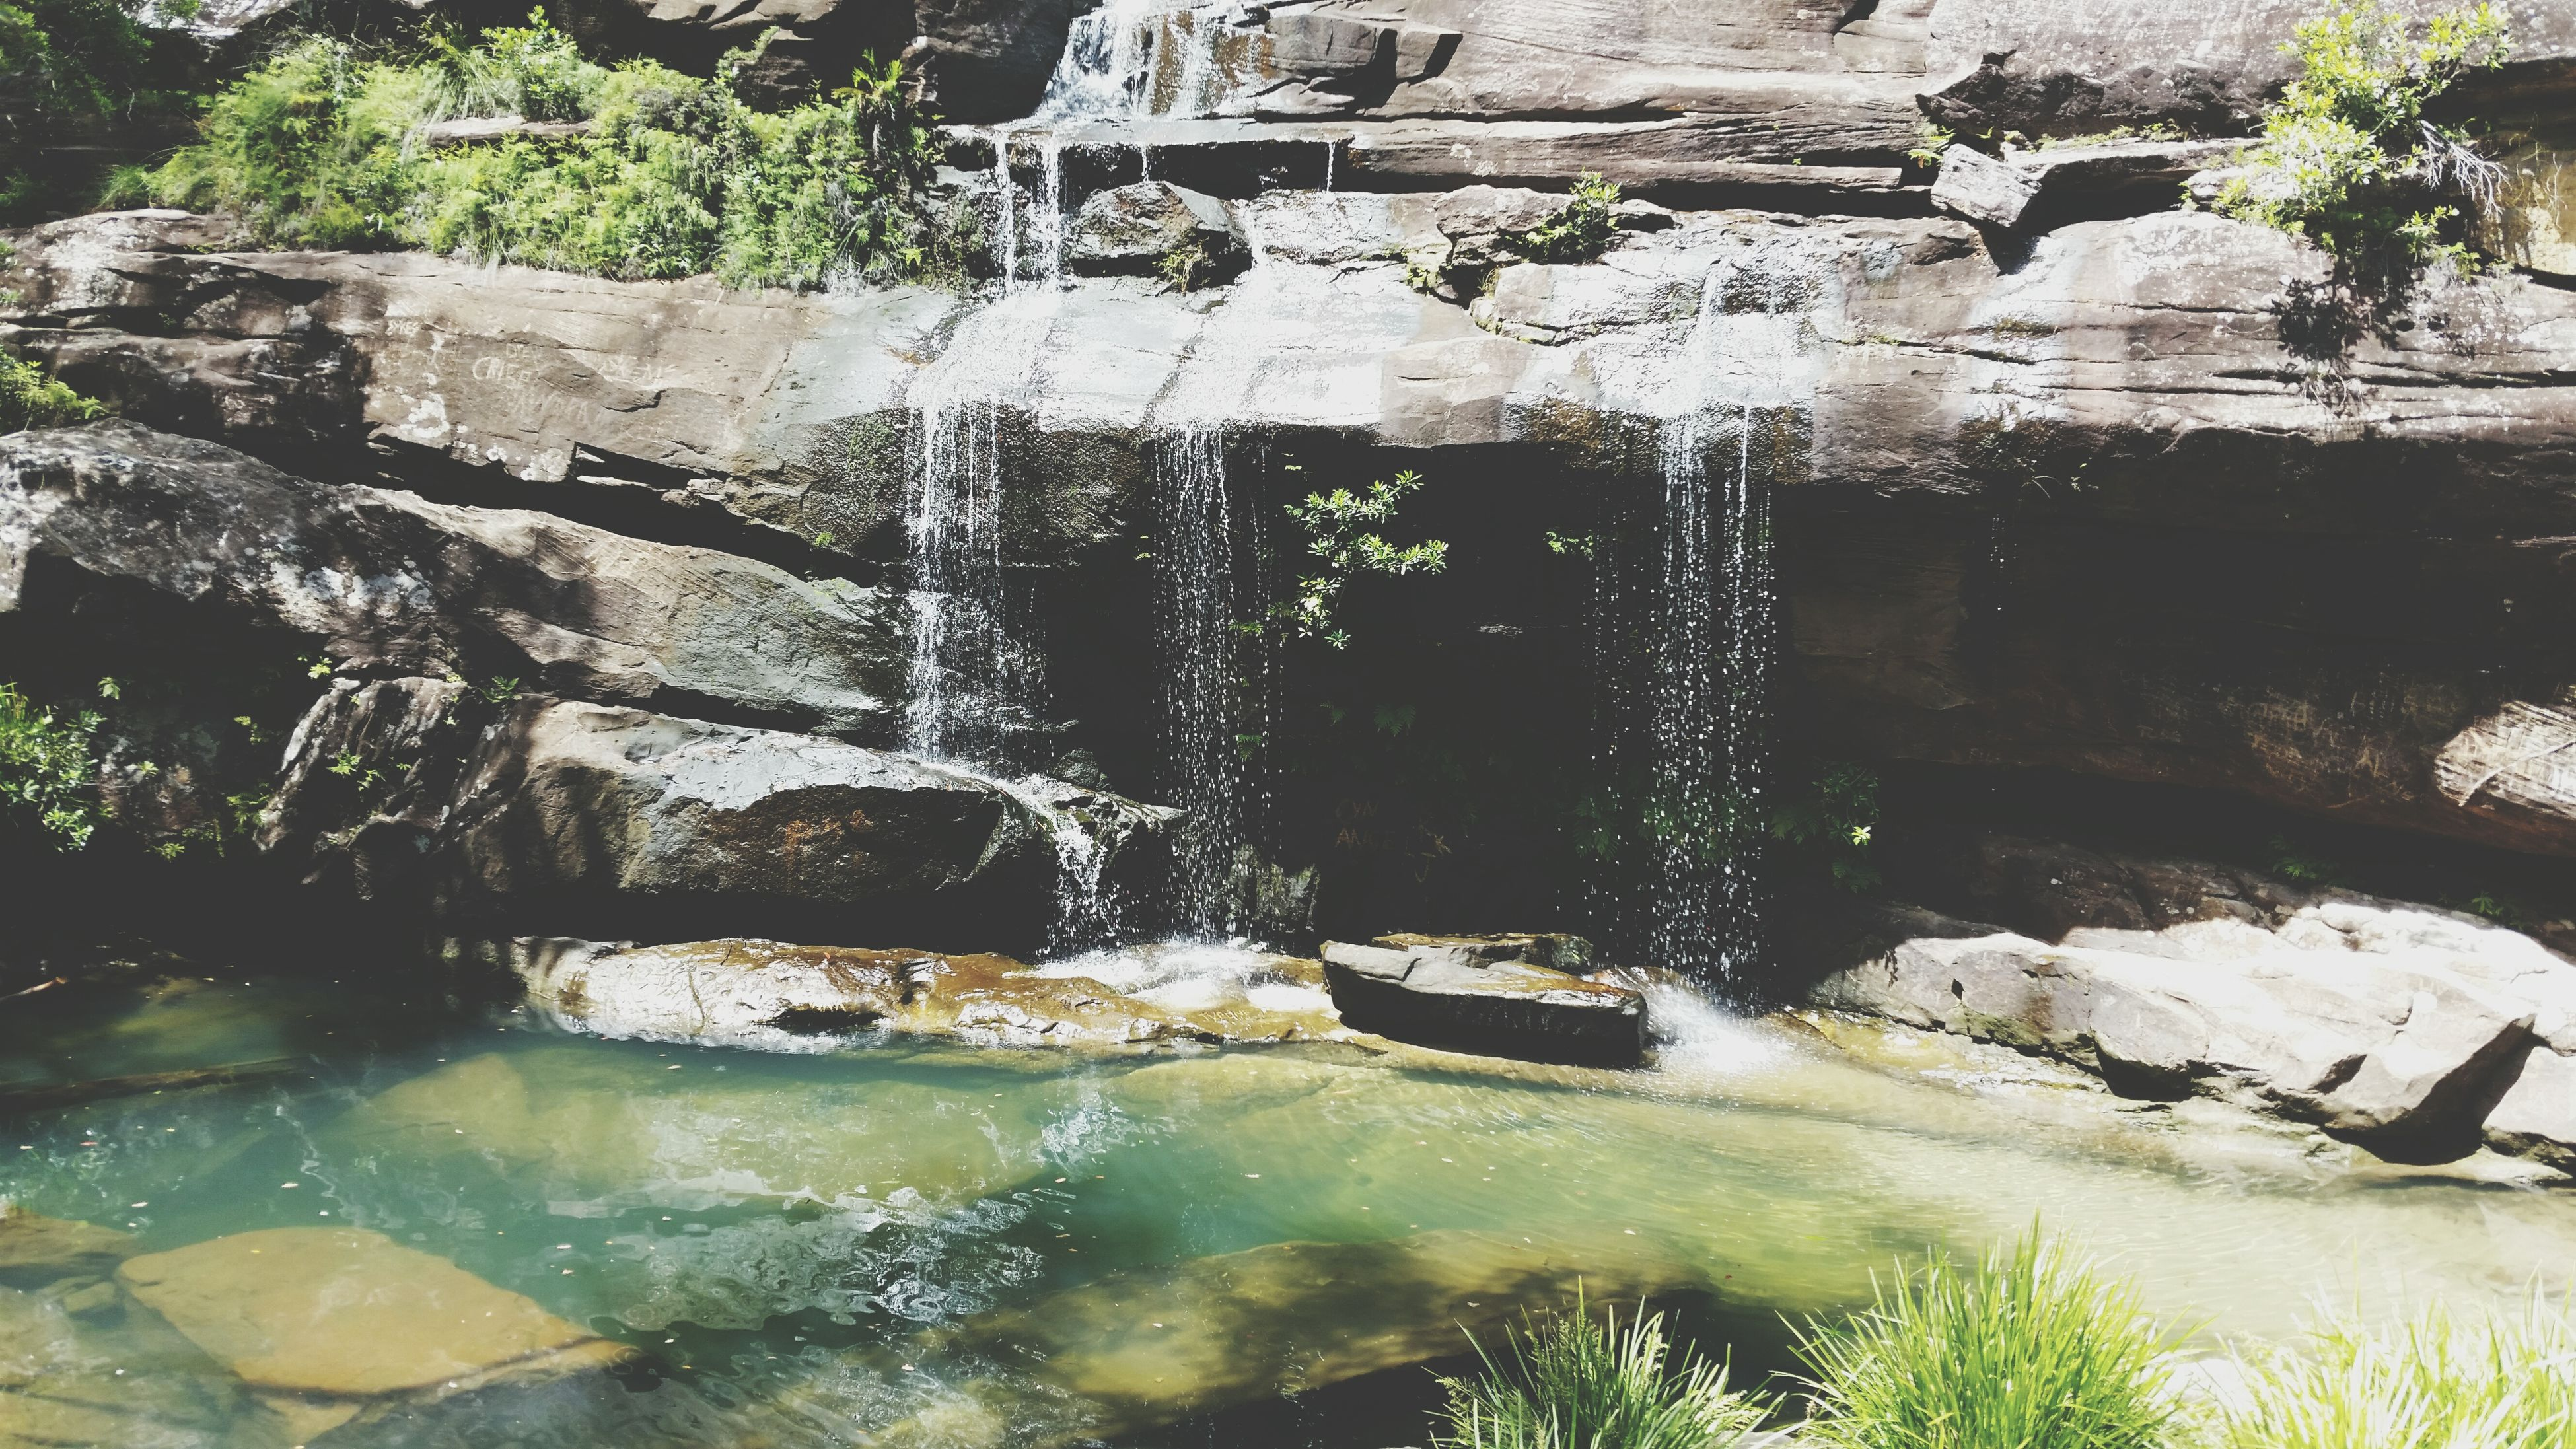 water, rock - object, reflection, flowing water, stream, waterfront, nature, river, plant, flowing, built structure, motion, day, outdoors, tree, no people, beauty in nature, rock, waterfall, architecture